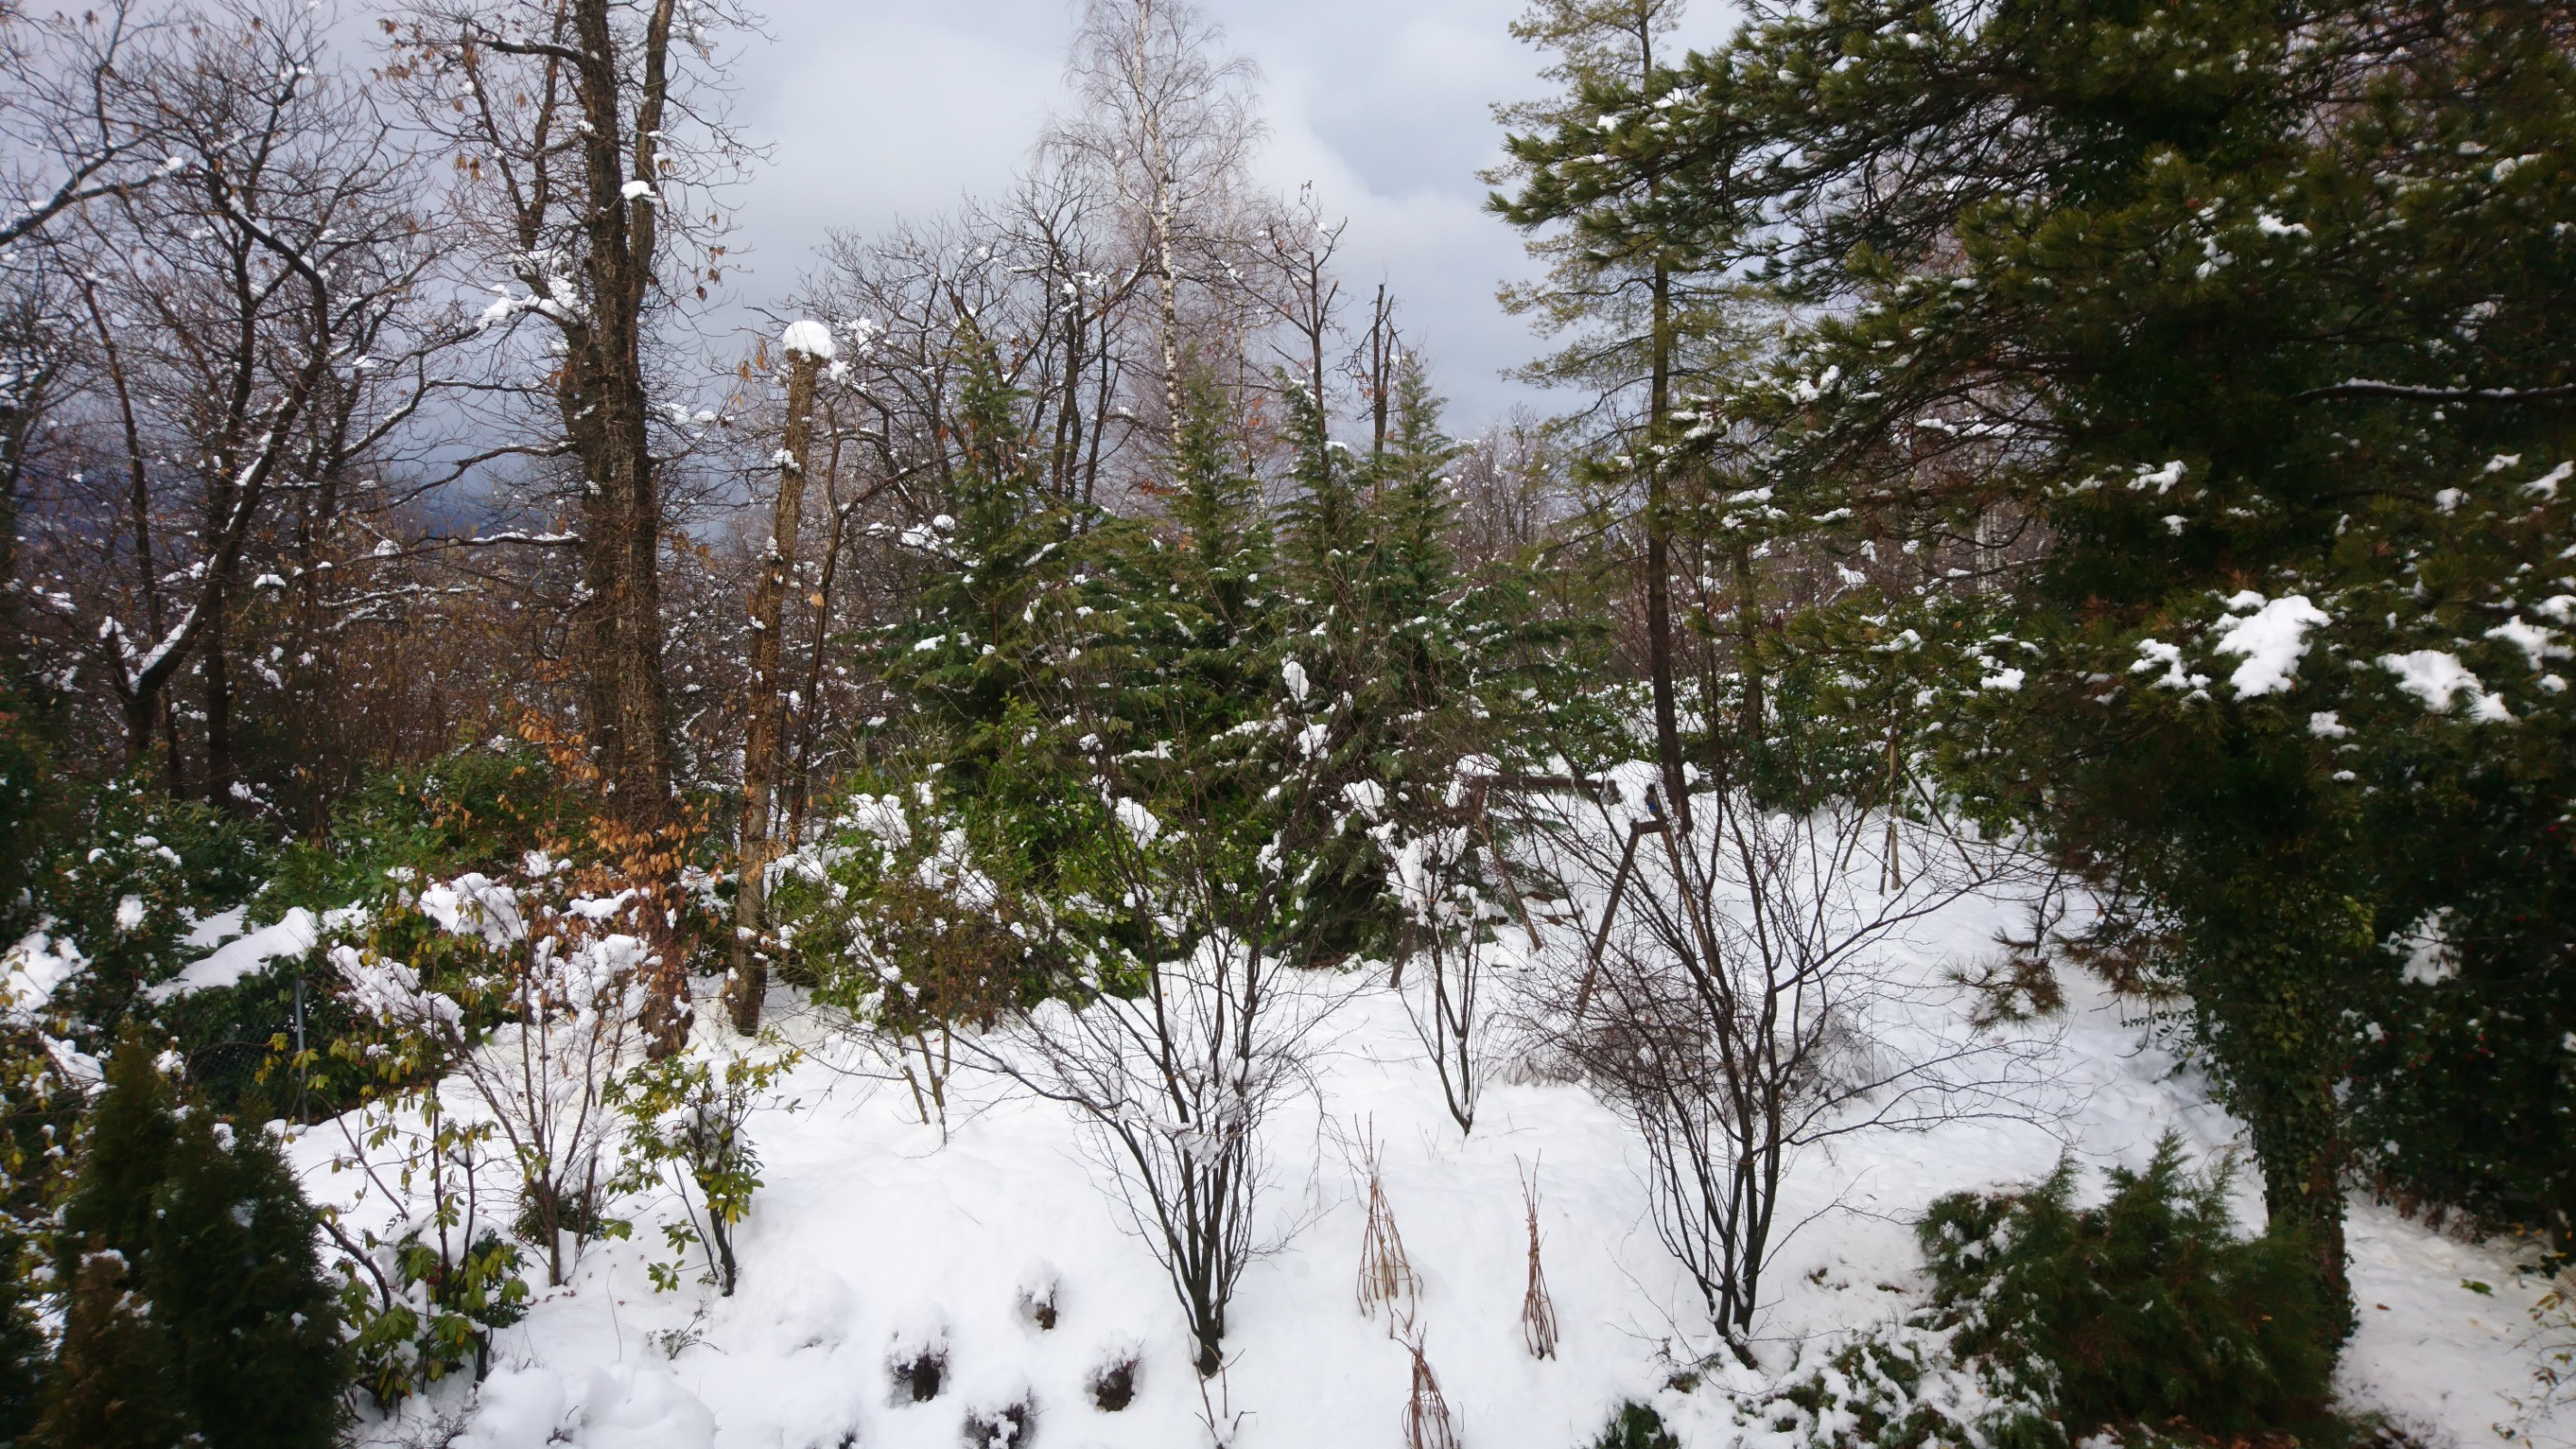 The picture shows green trees and surrounding terrain covered with snow.